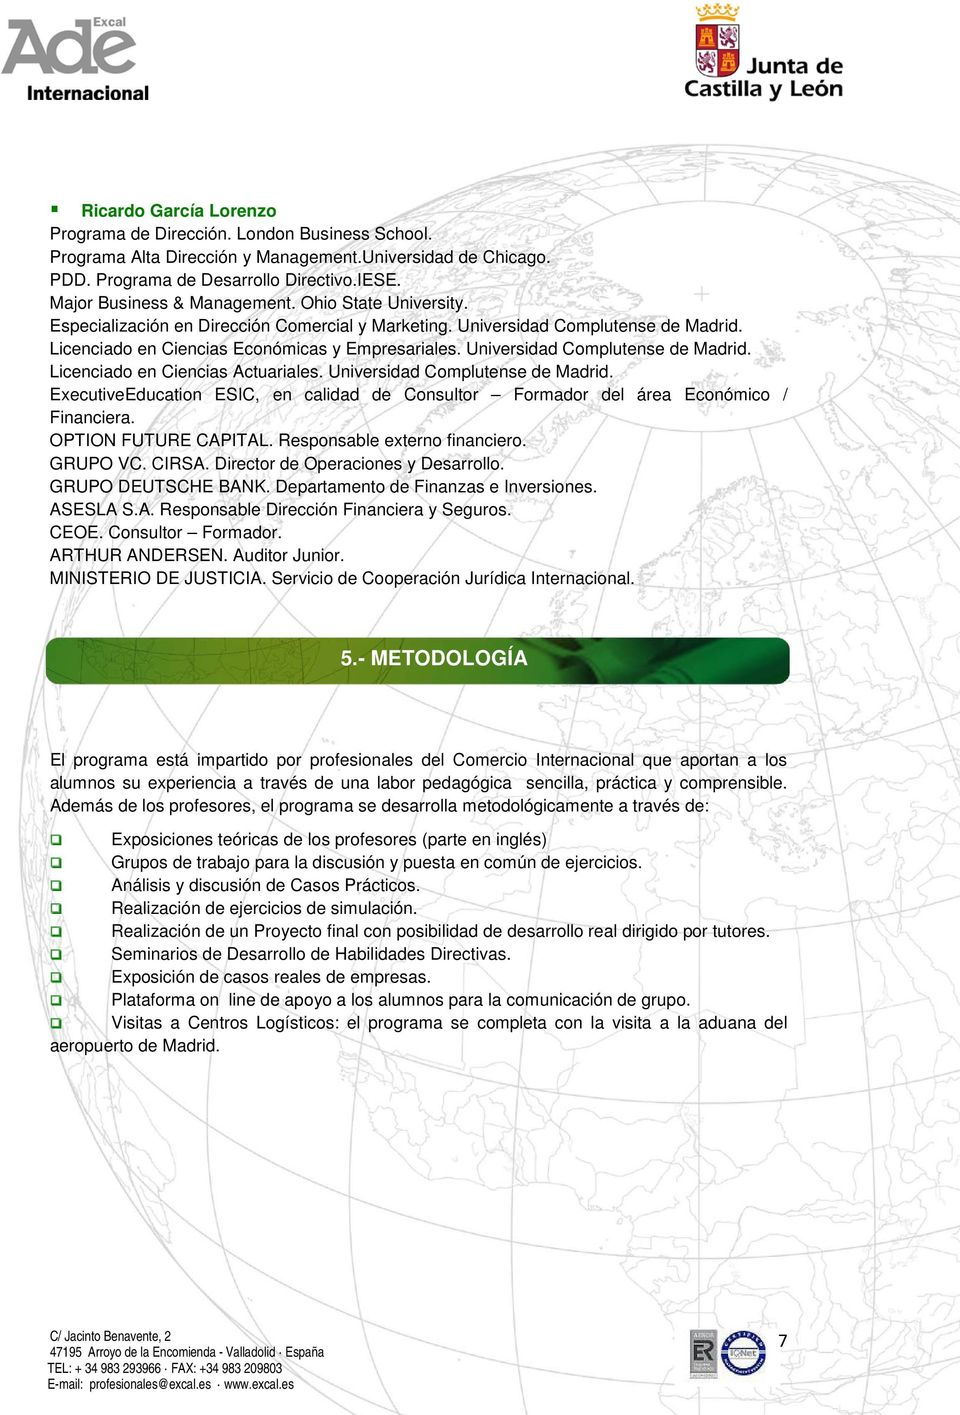 Universidad Complutense de Madrid. Licenciado en Ciencias Actuariales. Universidad Complutense de Madrid. ExecutiveEducation ESIC, en calidad de Consultor Formador del área Económico / Financiera.